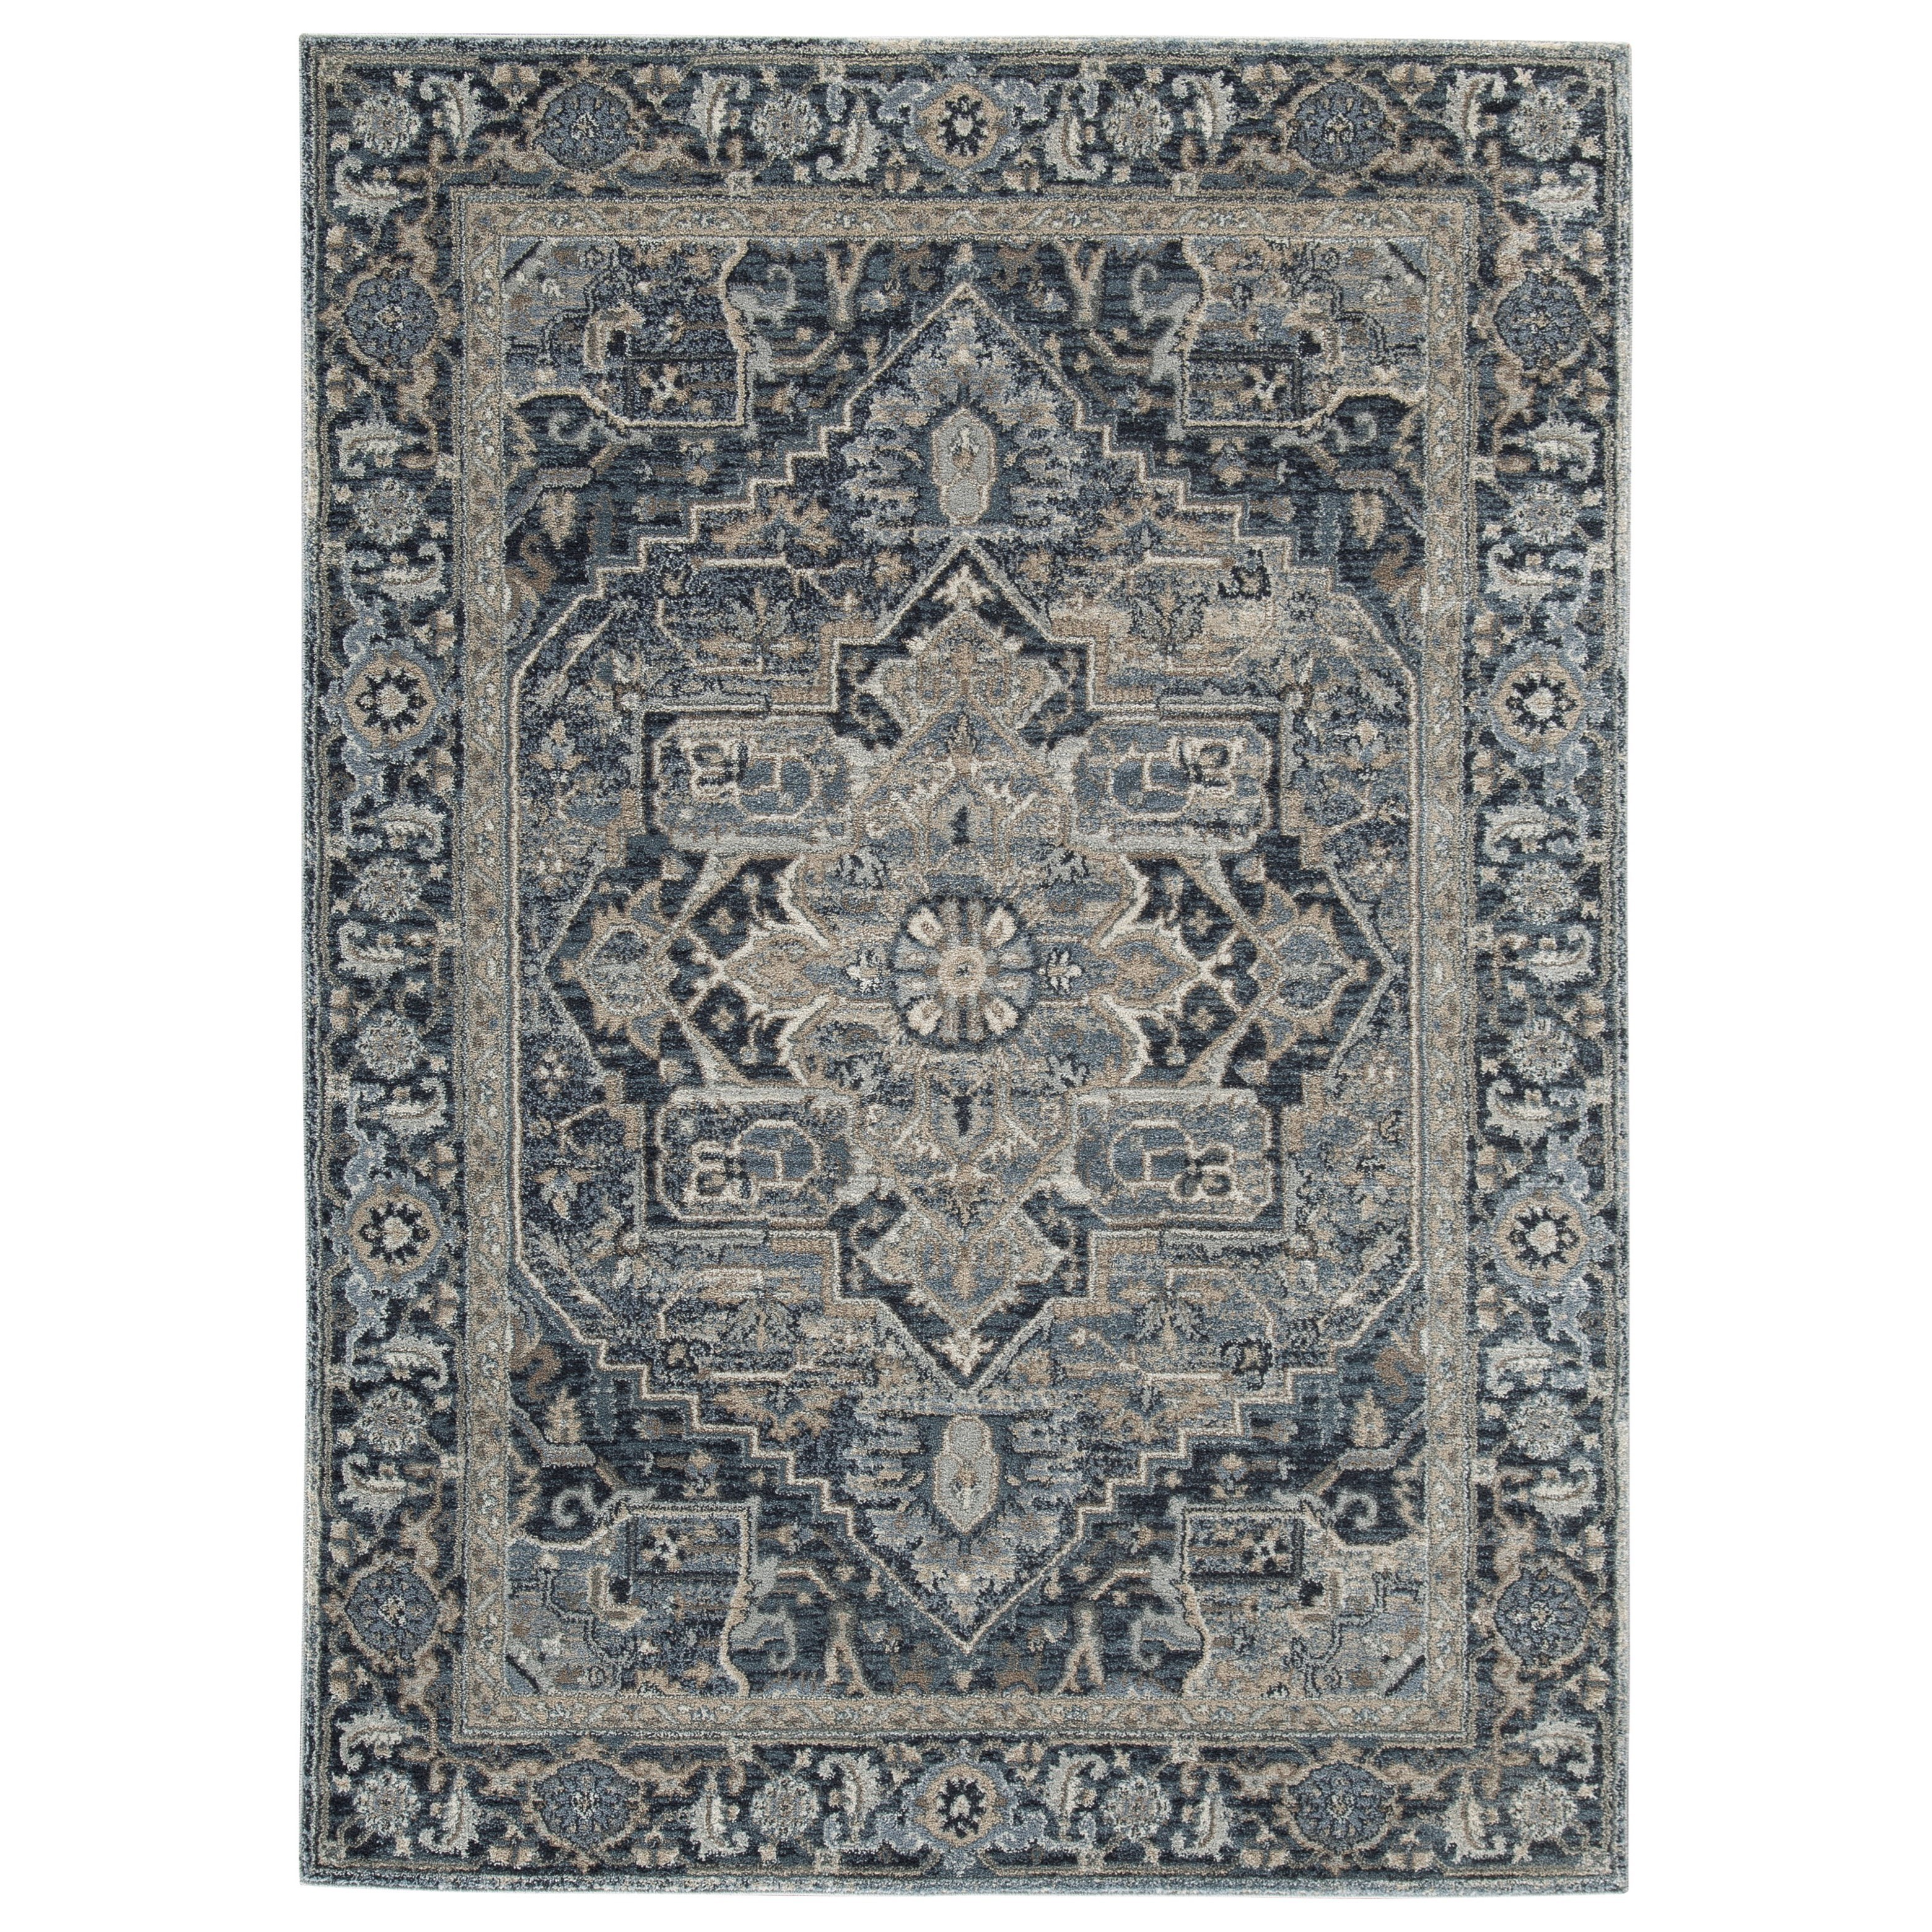 Traditional Classics Area Rugs Paretta Cream/Navy/Gray Large Rug by Signature Design by Ashley at Furniture Barn